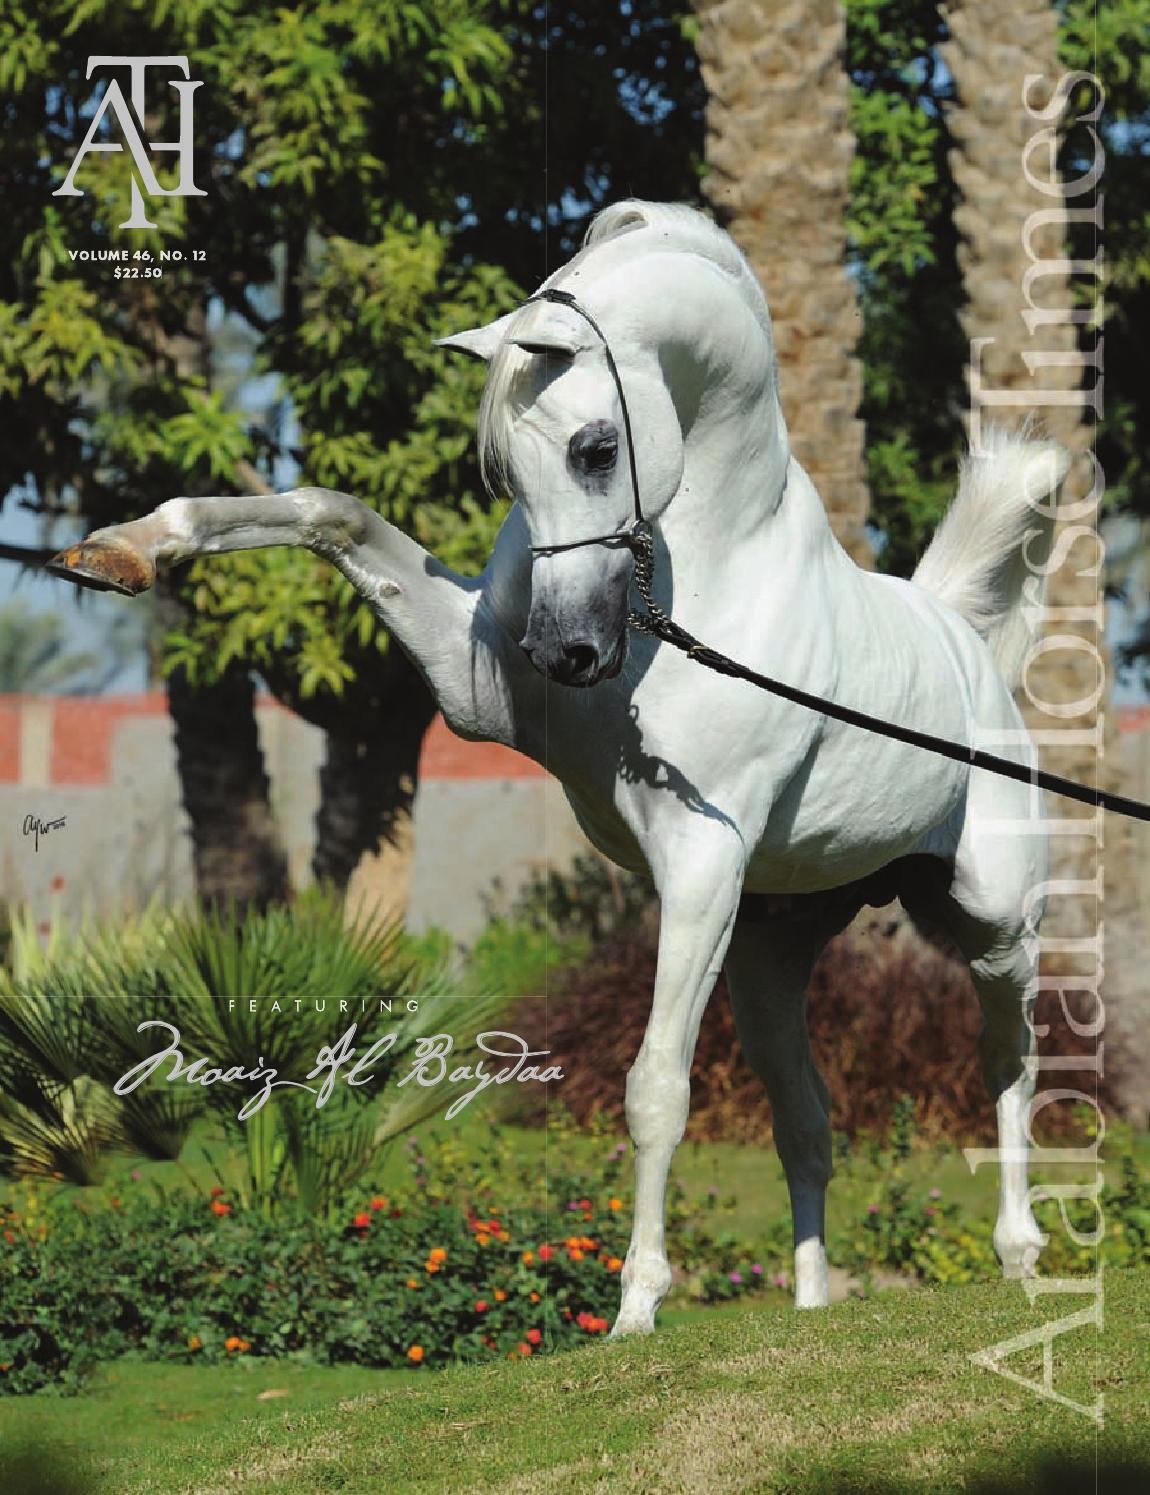 Arabian Horse Times Vol46 No12 Issue 5 By Arabian Horse Times Issuu